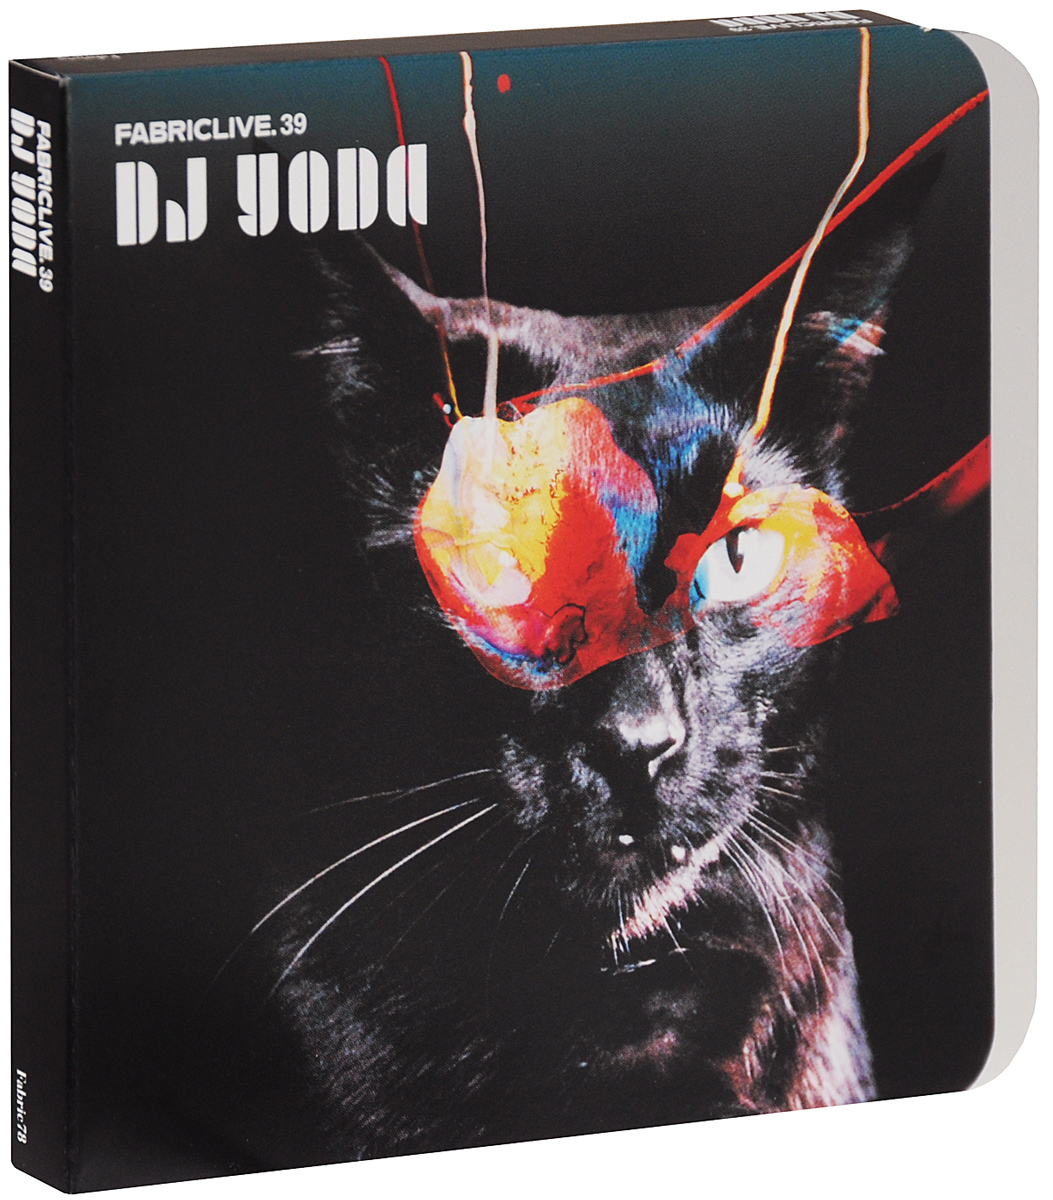 DJ Yoda,The Thunderclaps,Violent Femmes,Skibbadee,Handsome Boy Modeling School,О'Ши Джексон,Ghost,Jurassic 5,The Hot 8 Brass Band,D Nice,Gang Starr Dj Yoda. Fabriclive. 39 free shipping hot sale stagelight led dancing floor light for dj wedding